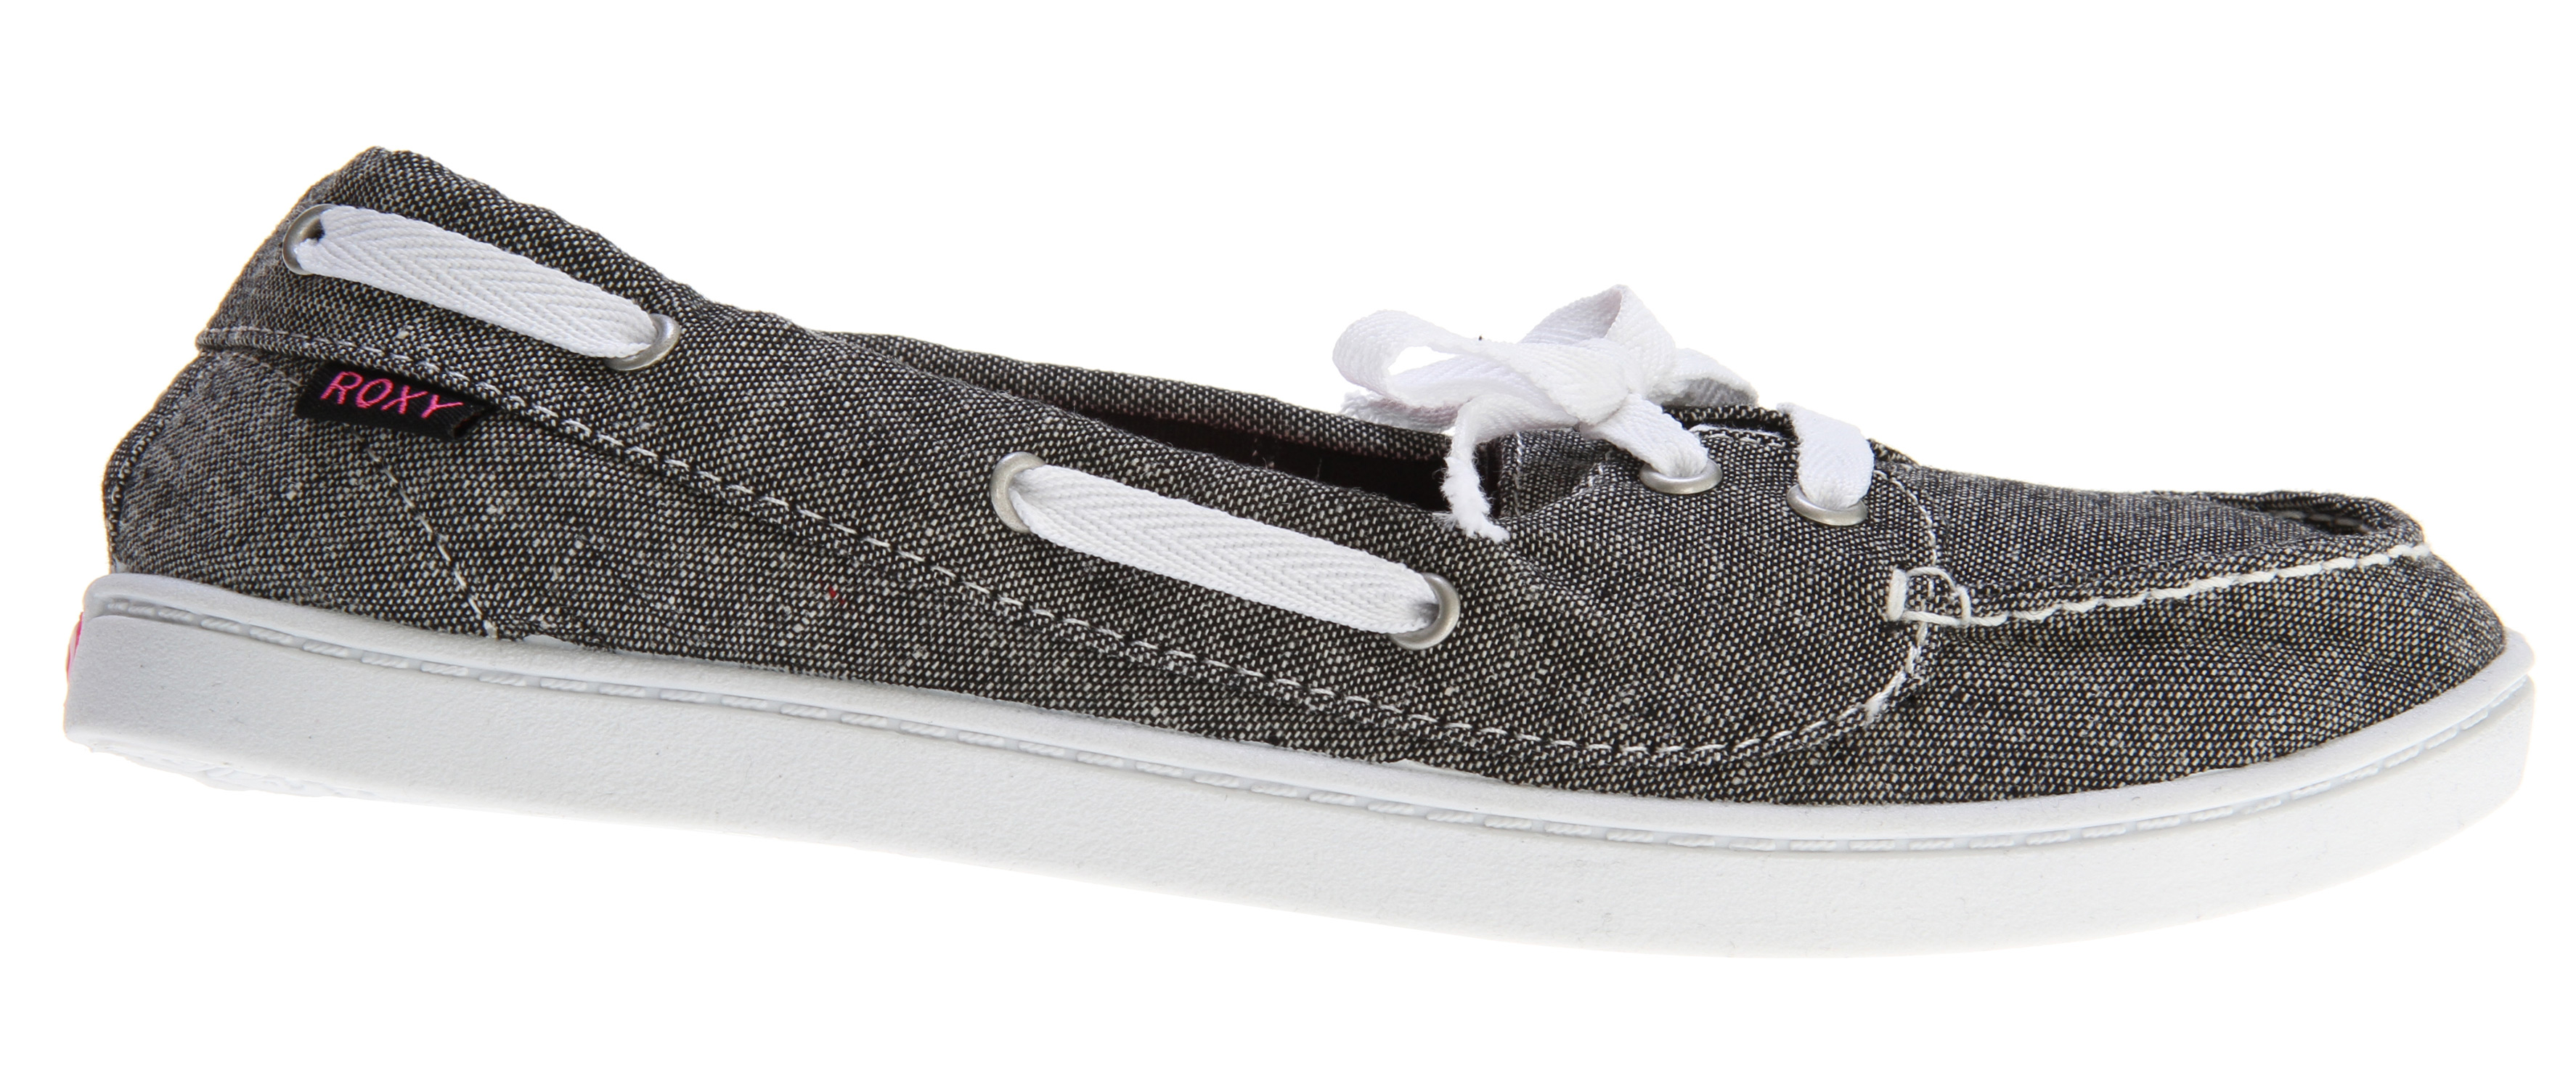 Surf Key Features of the Roxy Ahoy Shoes: Chambray/linen/or twill uppers with cotton twill laces and metal eyelets Canvas lining and logo printed sock Soft padded insole for comfort Flexible TPR injected outsole - $26.95